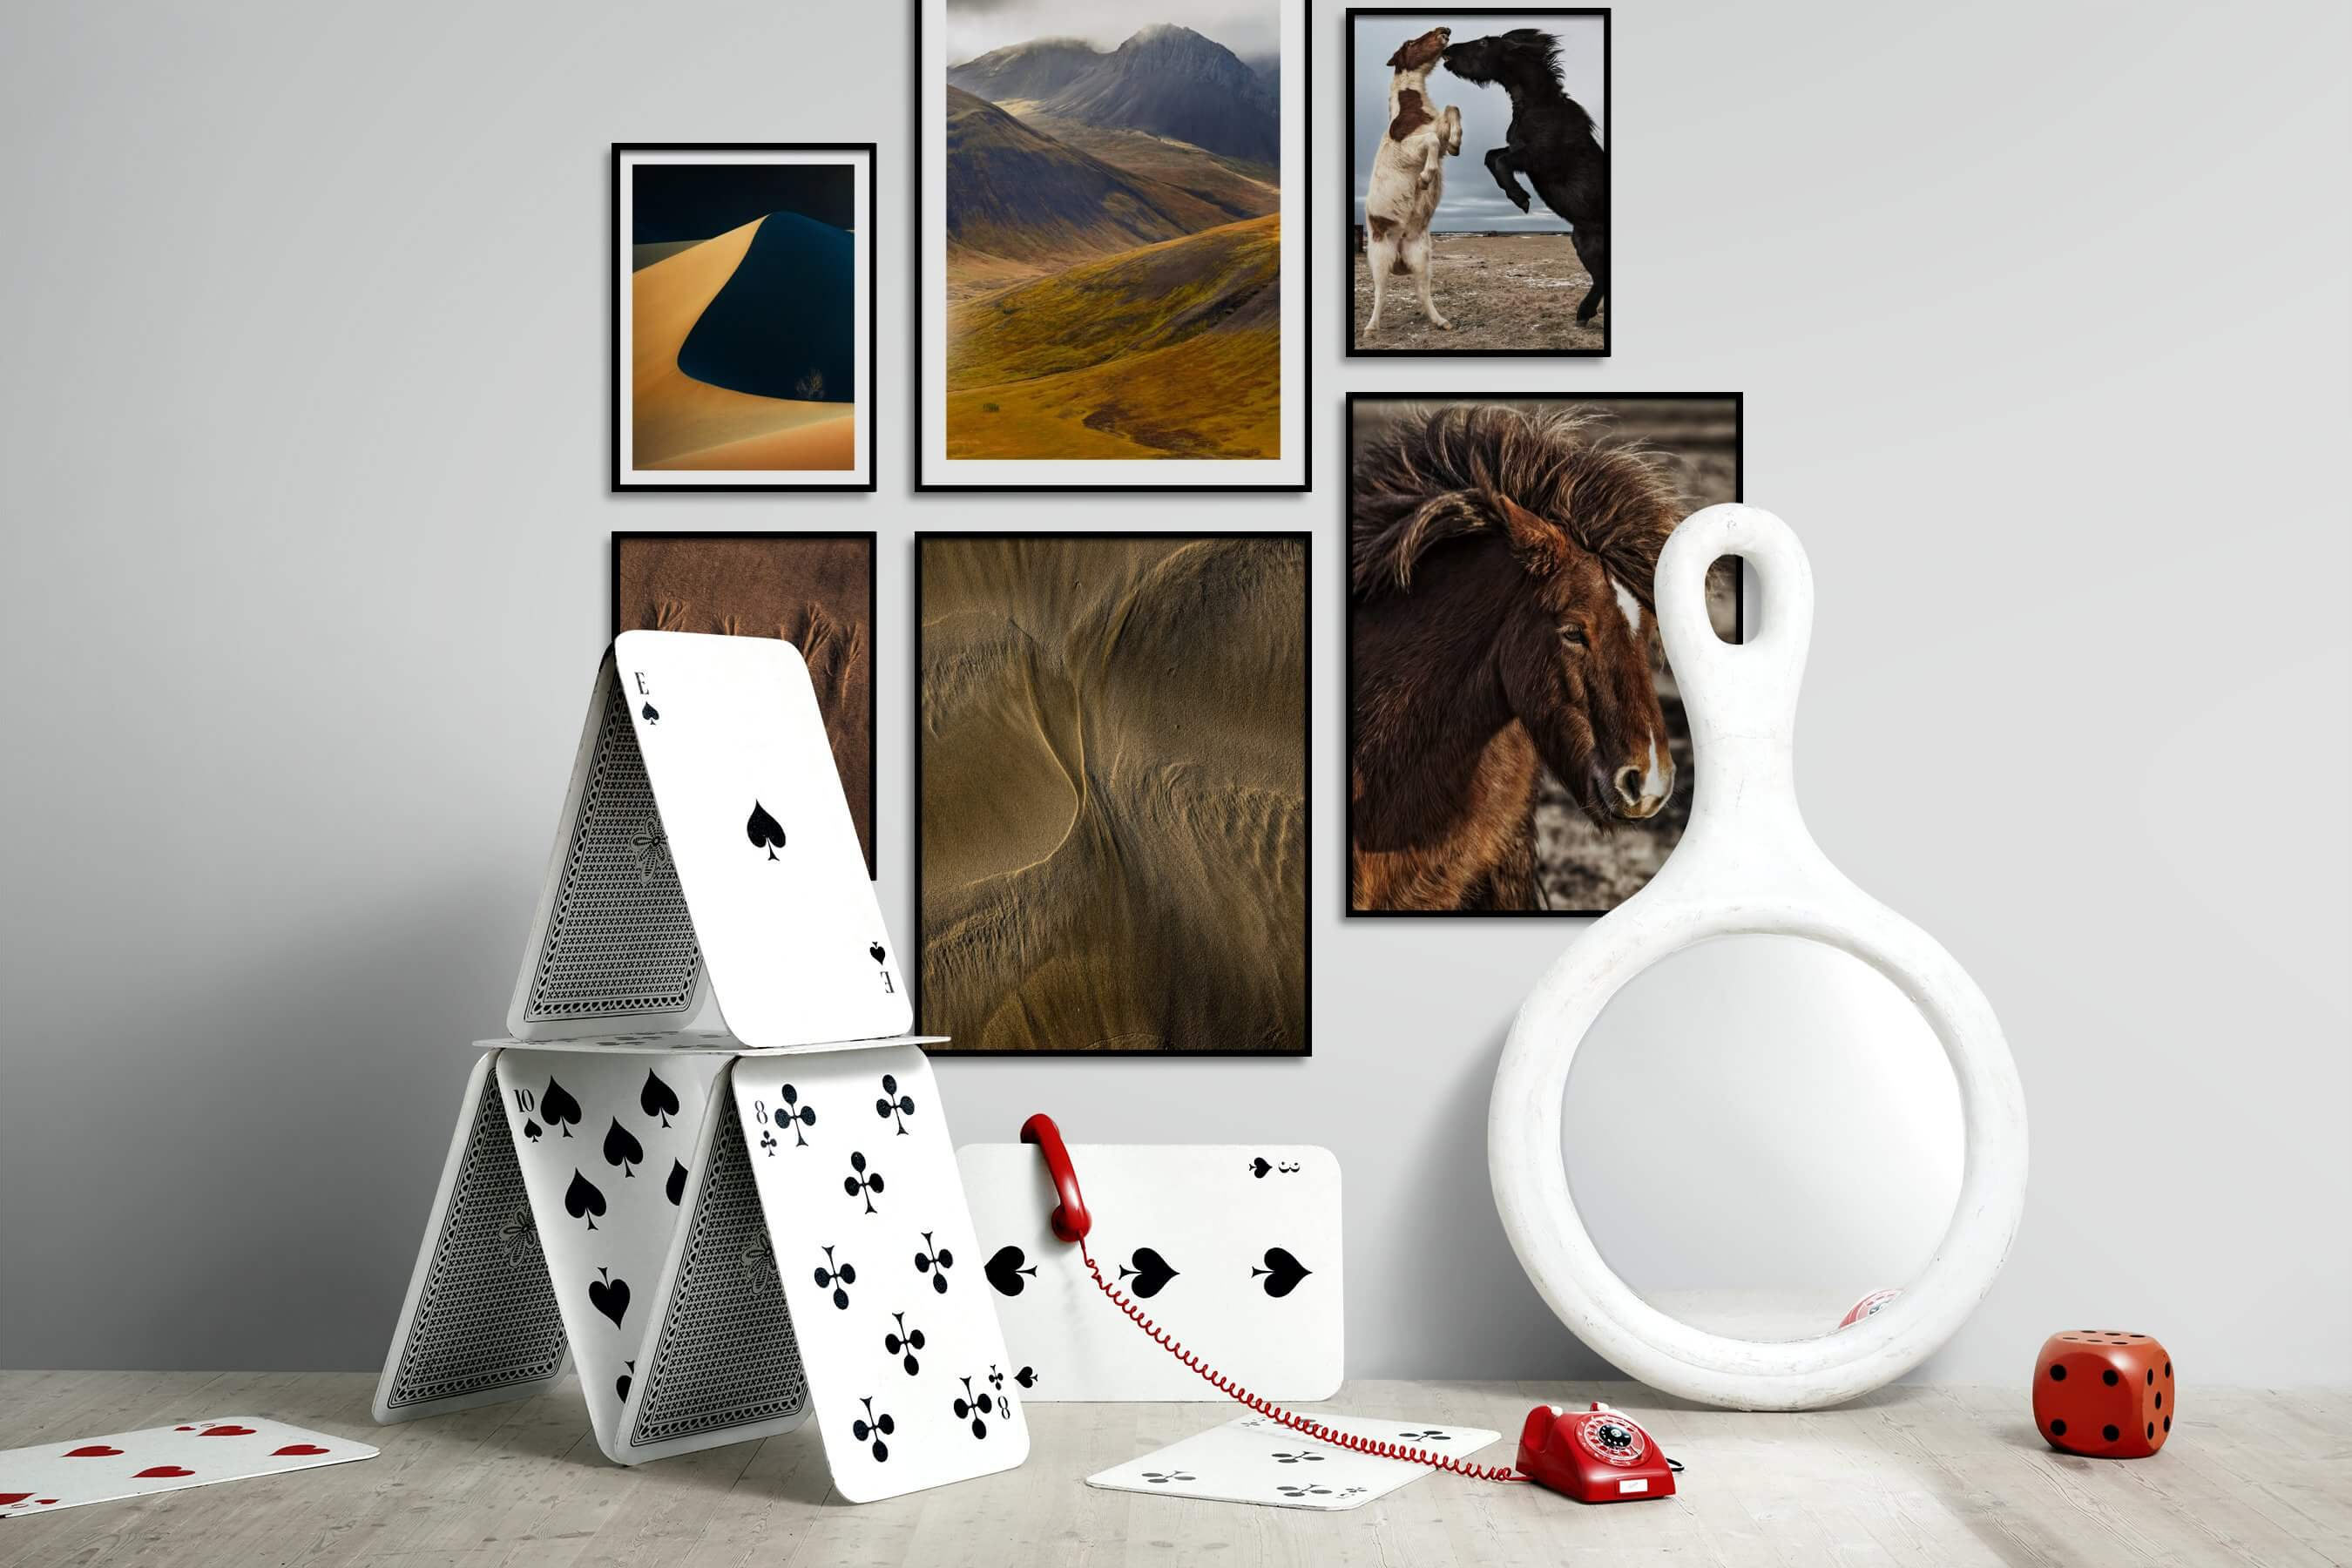 Gallery wall idea with six framed pictures arranged on a wall depicting For the Minimalist, Nature, For the Moderate, Animals, and Country Life